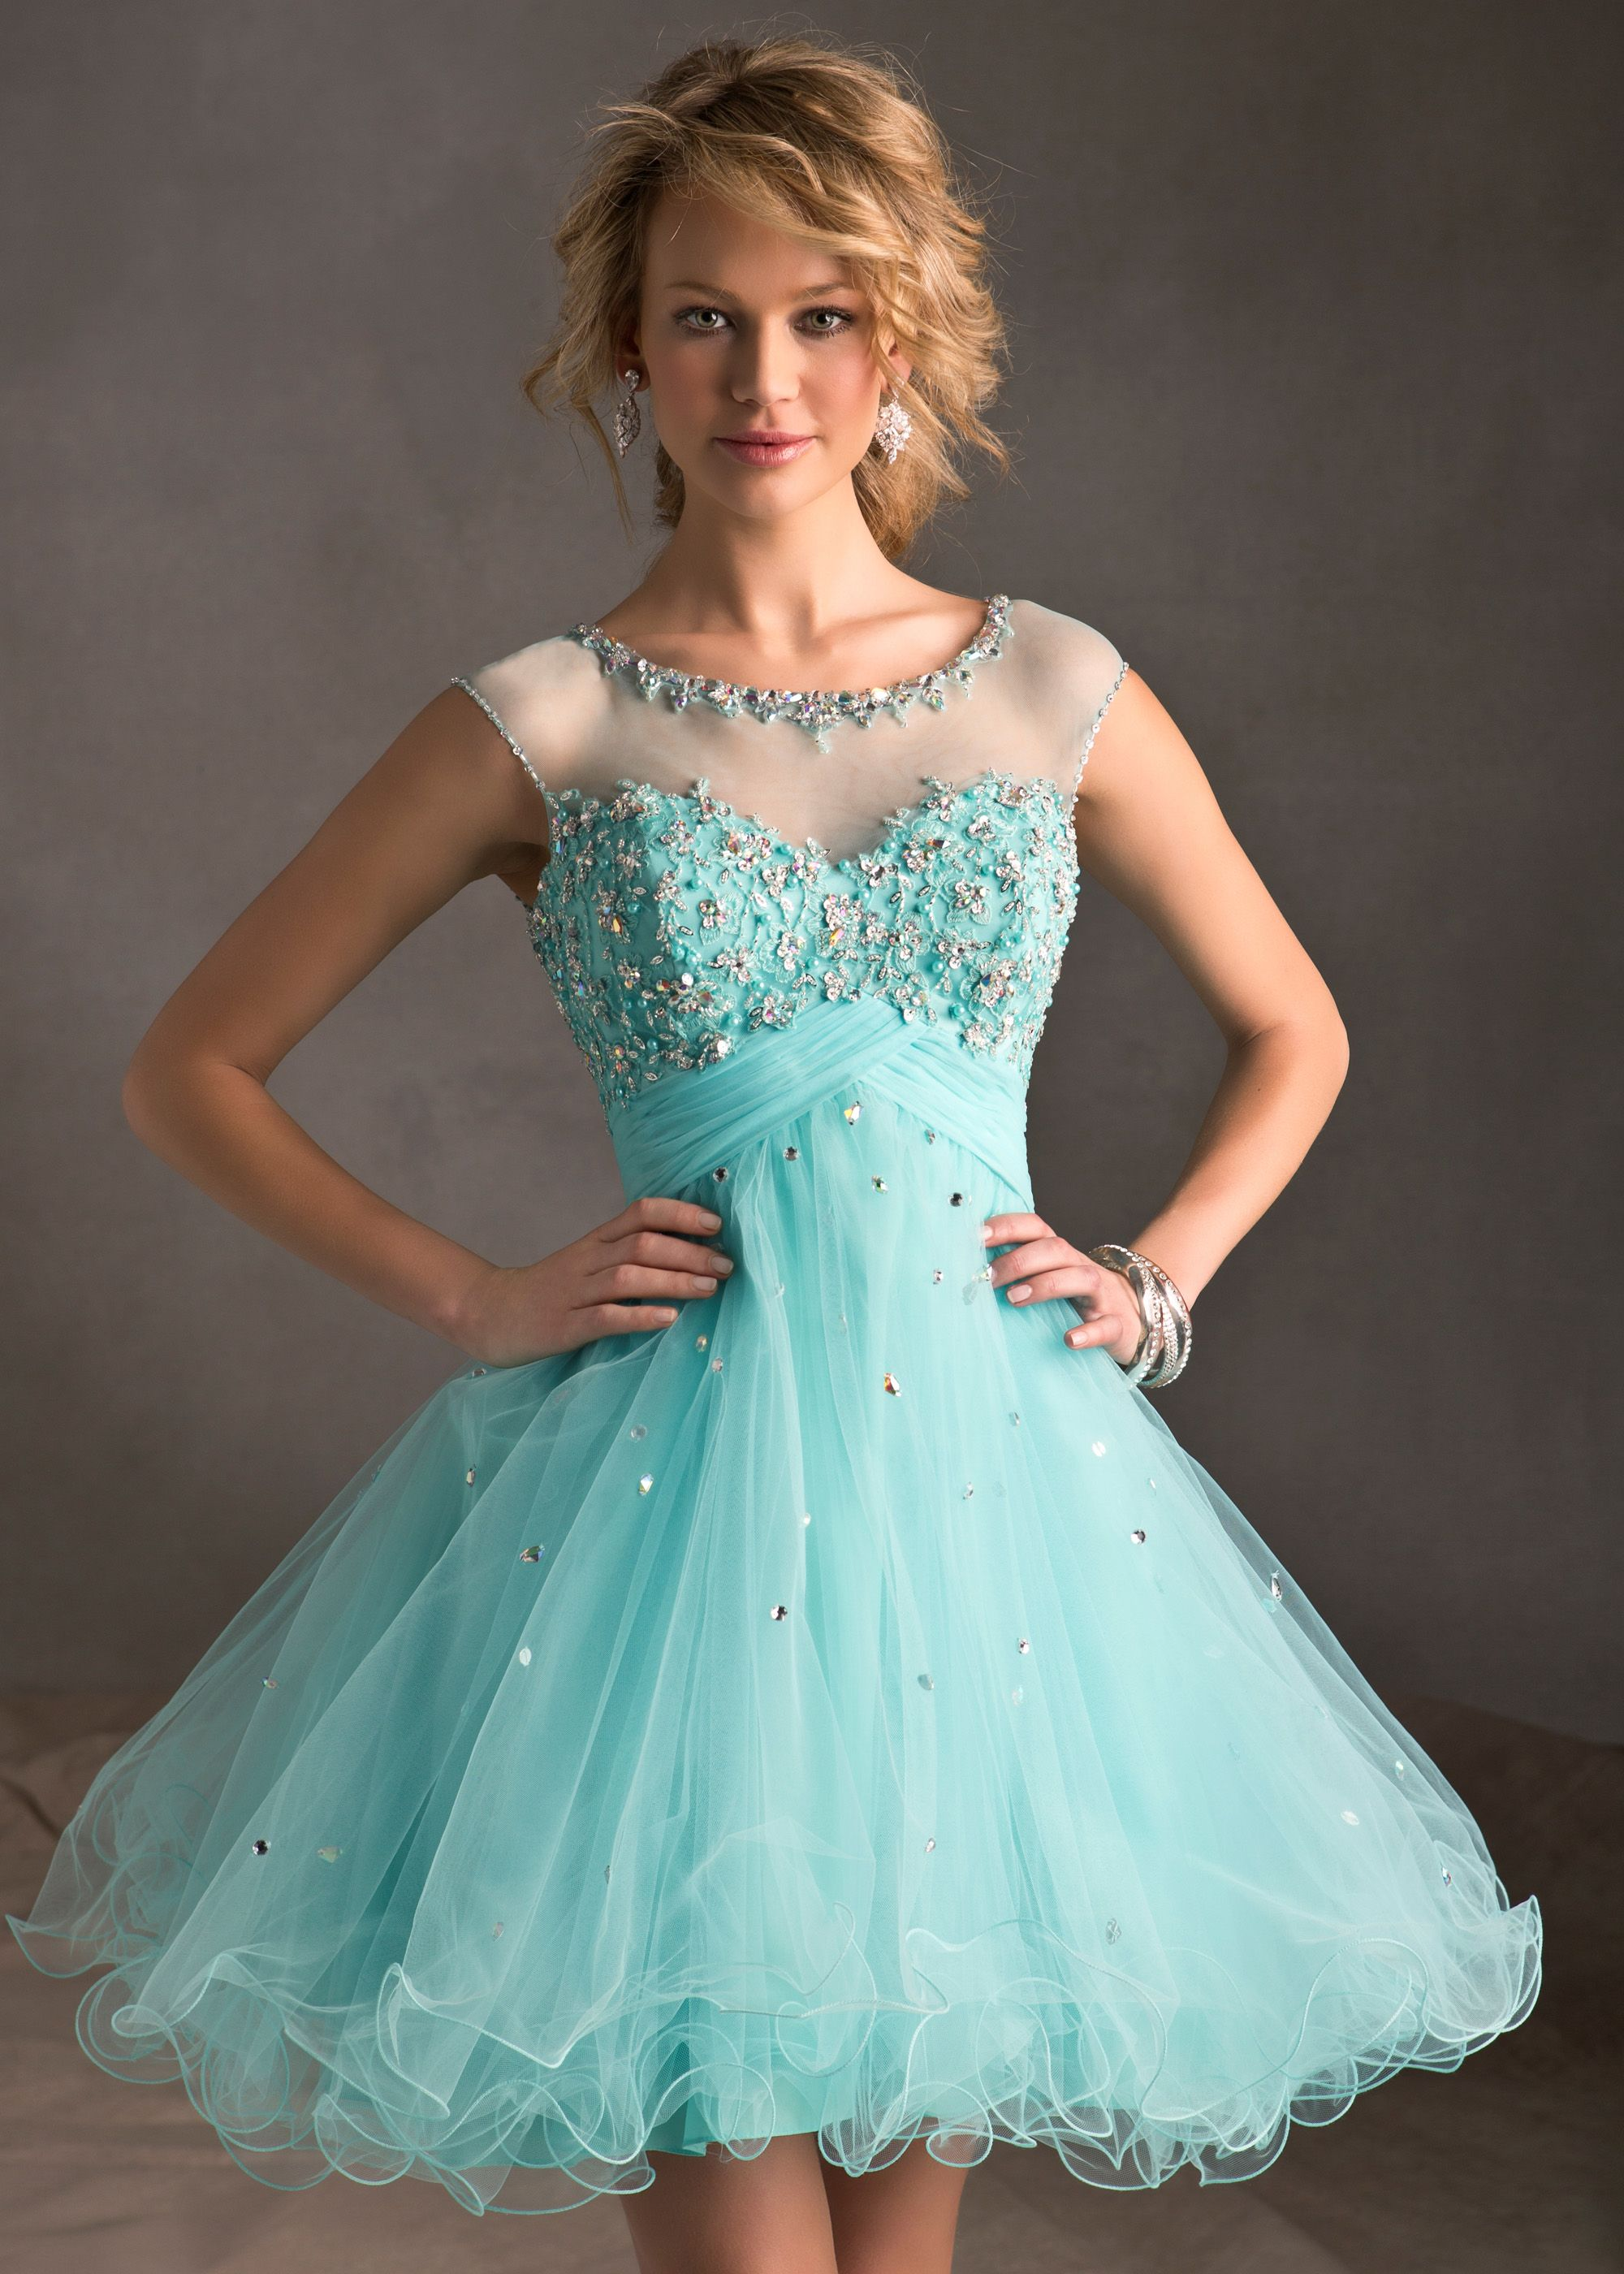 Low Price Guarantee on Sticks & Stones Mori Lee 9244 blue tulle beaded short homecoming dresses available now at RissyRoos.com.